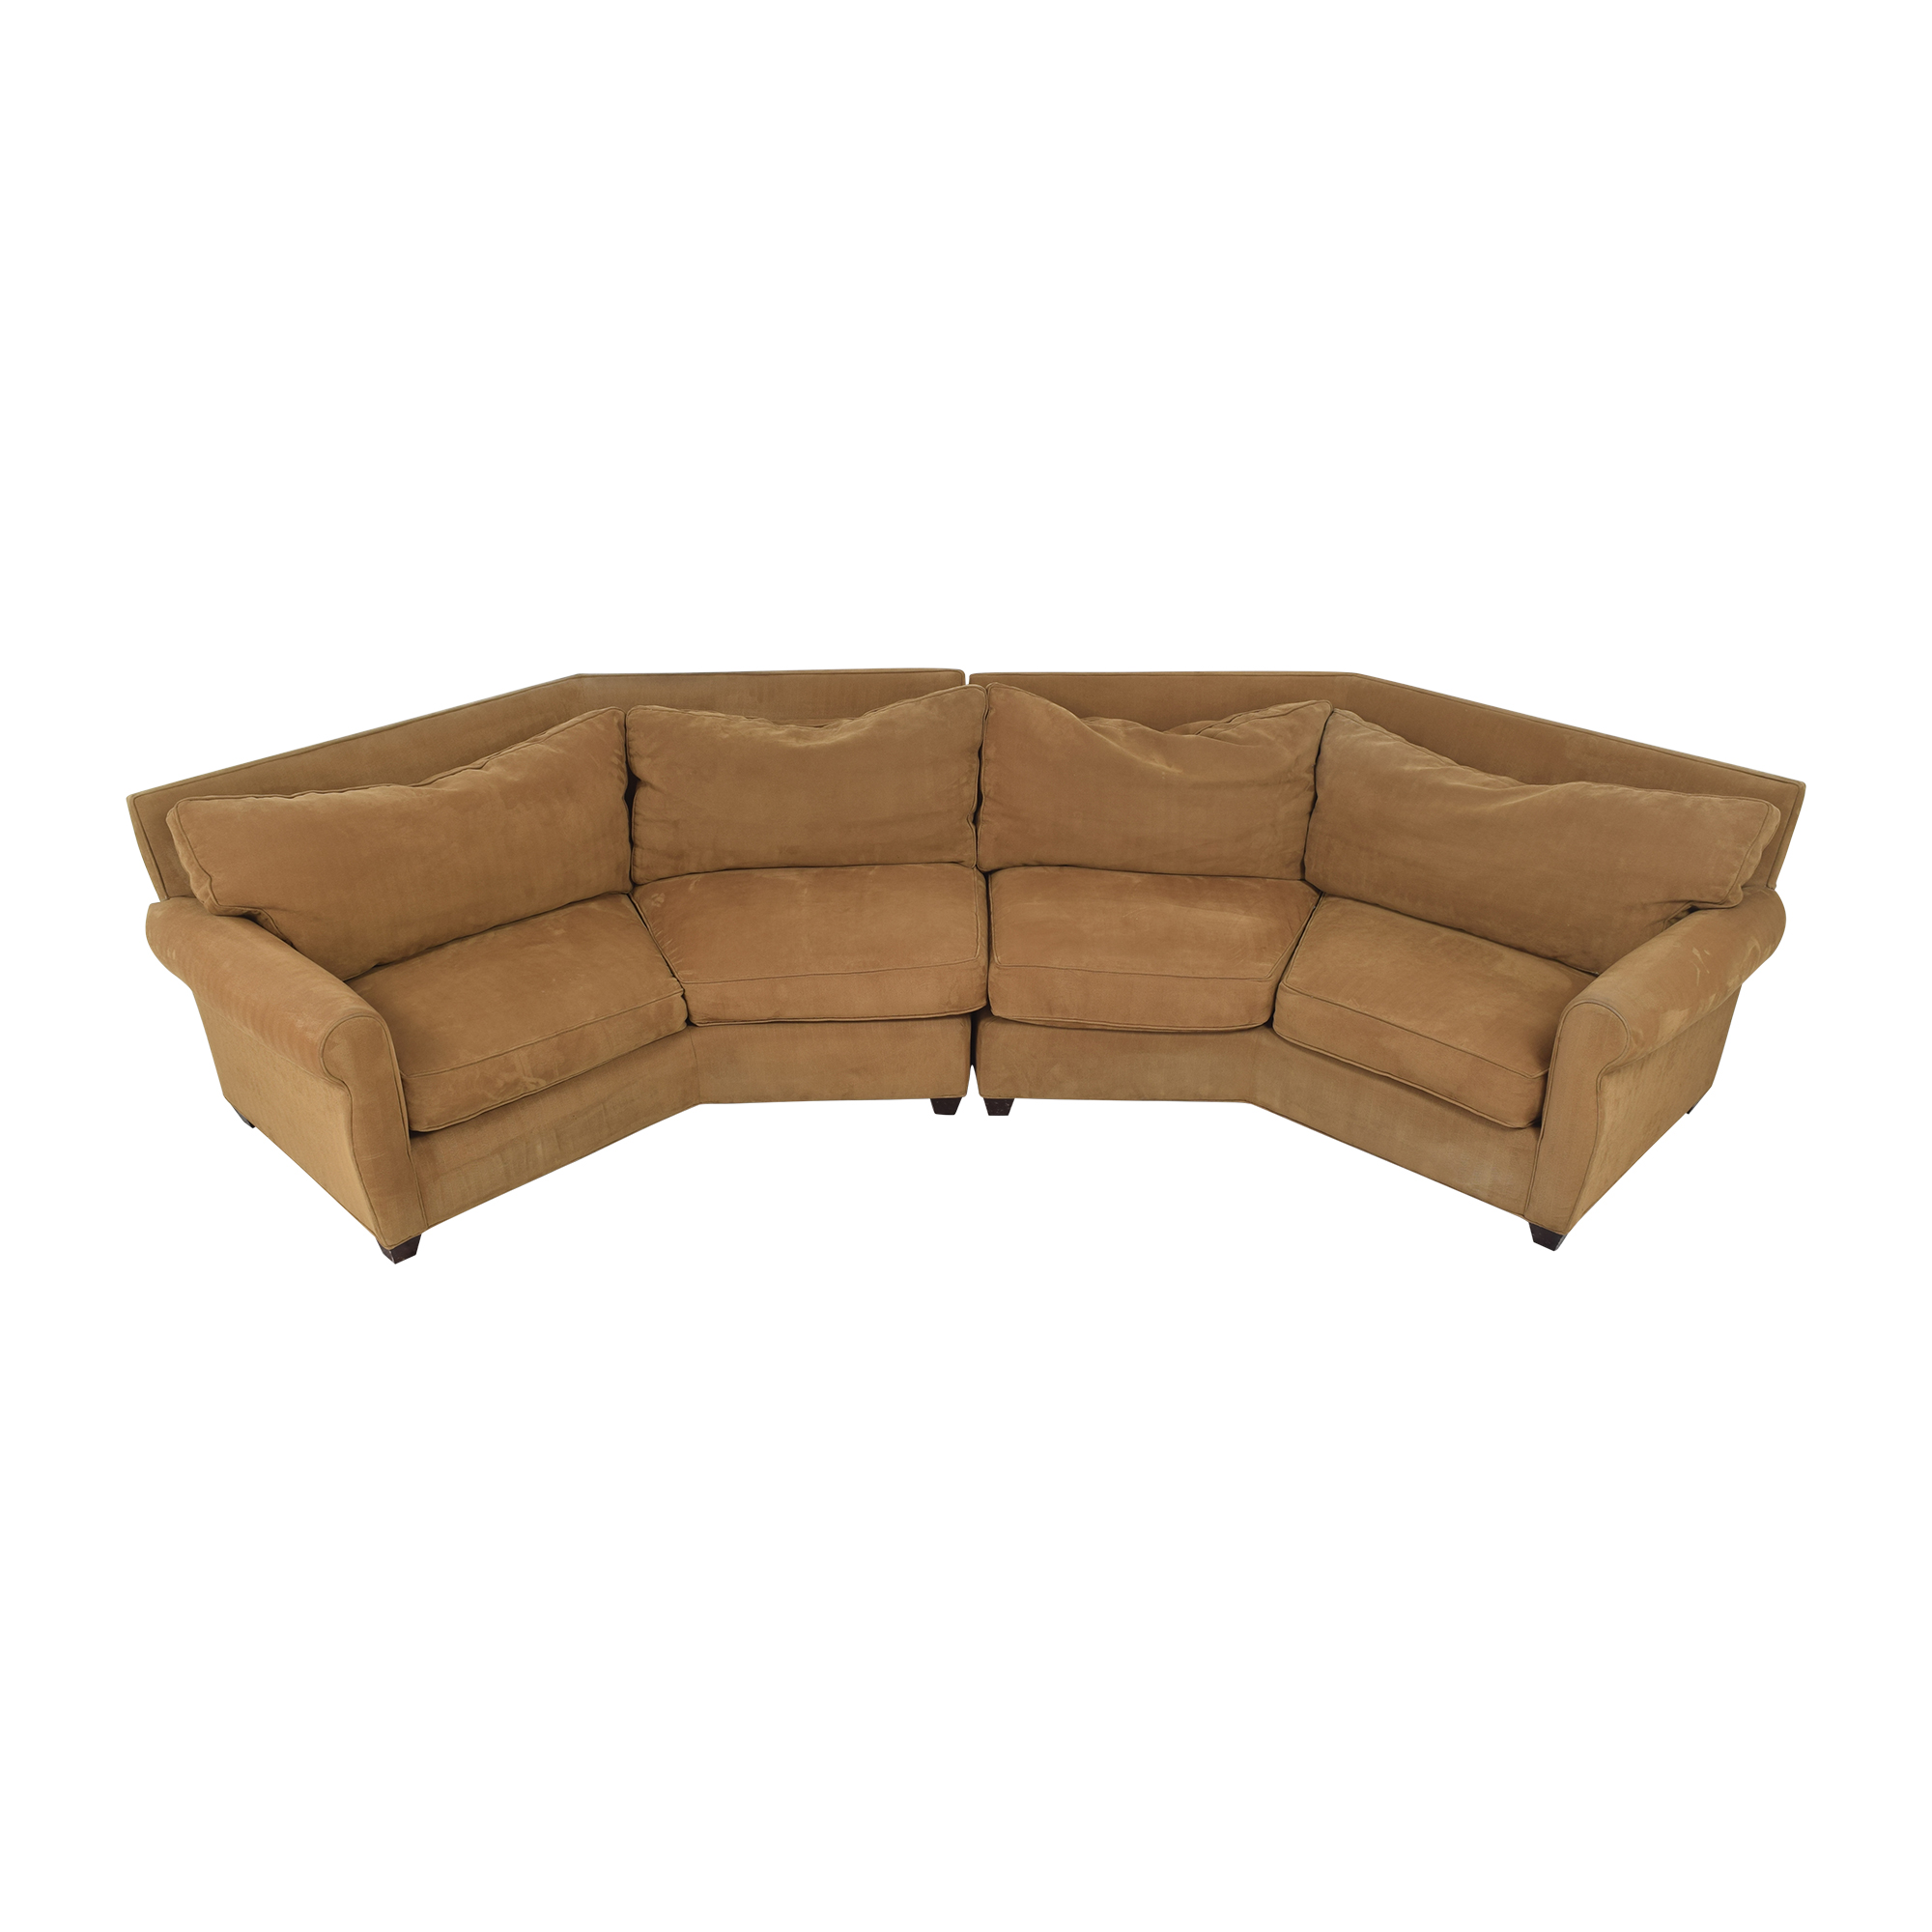 McCreary Modern McCreary Modern Sectional Sofa by  price